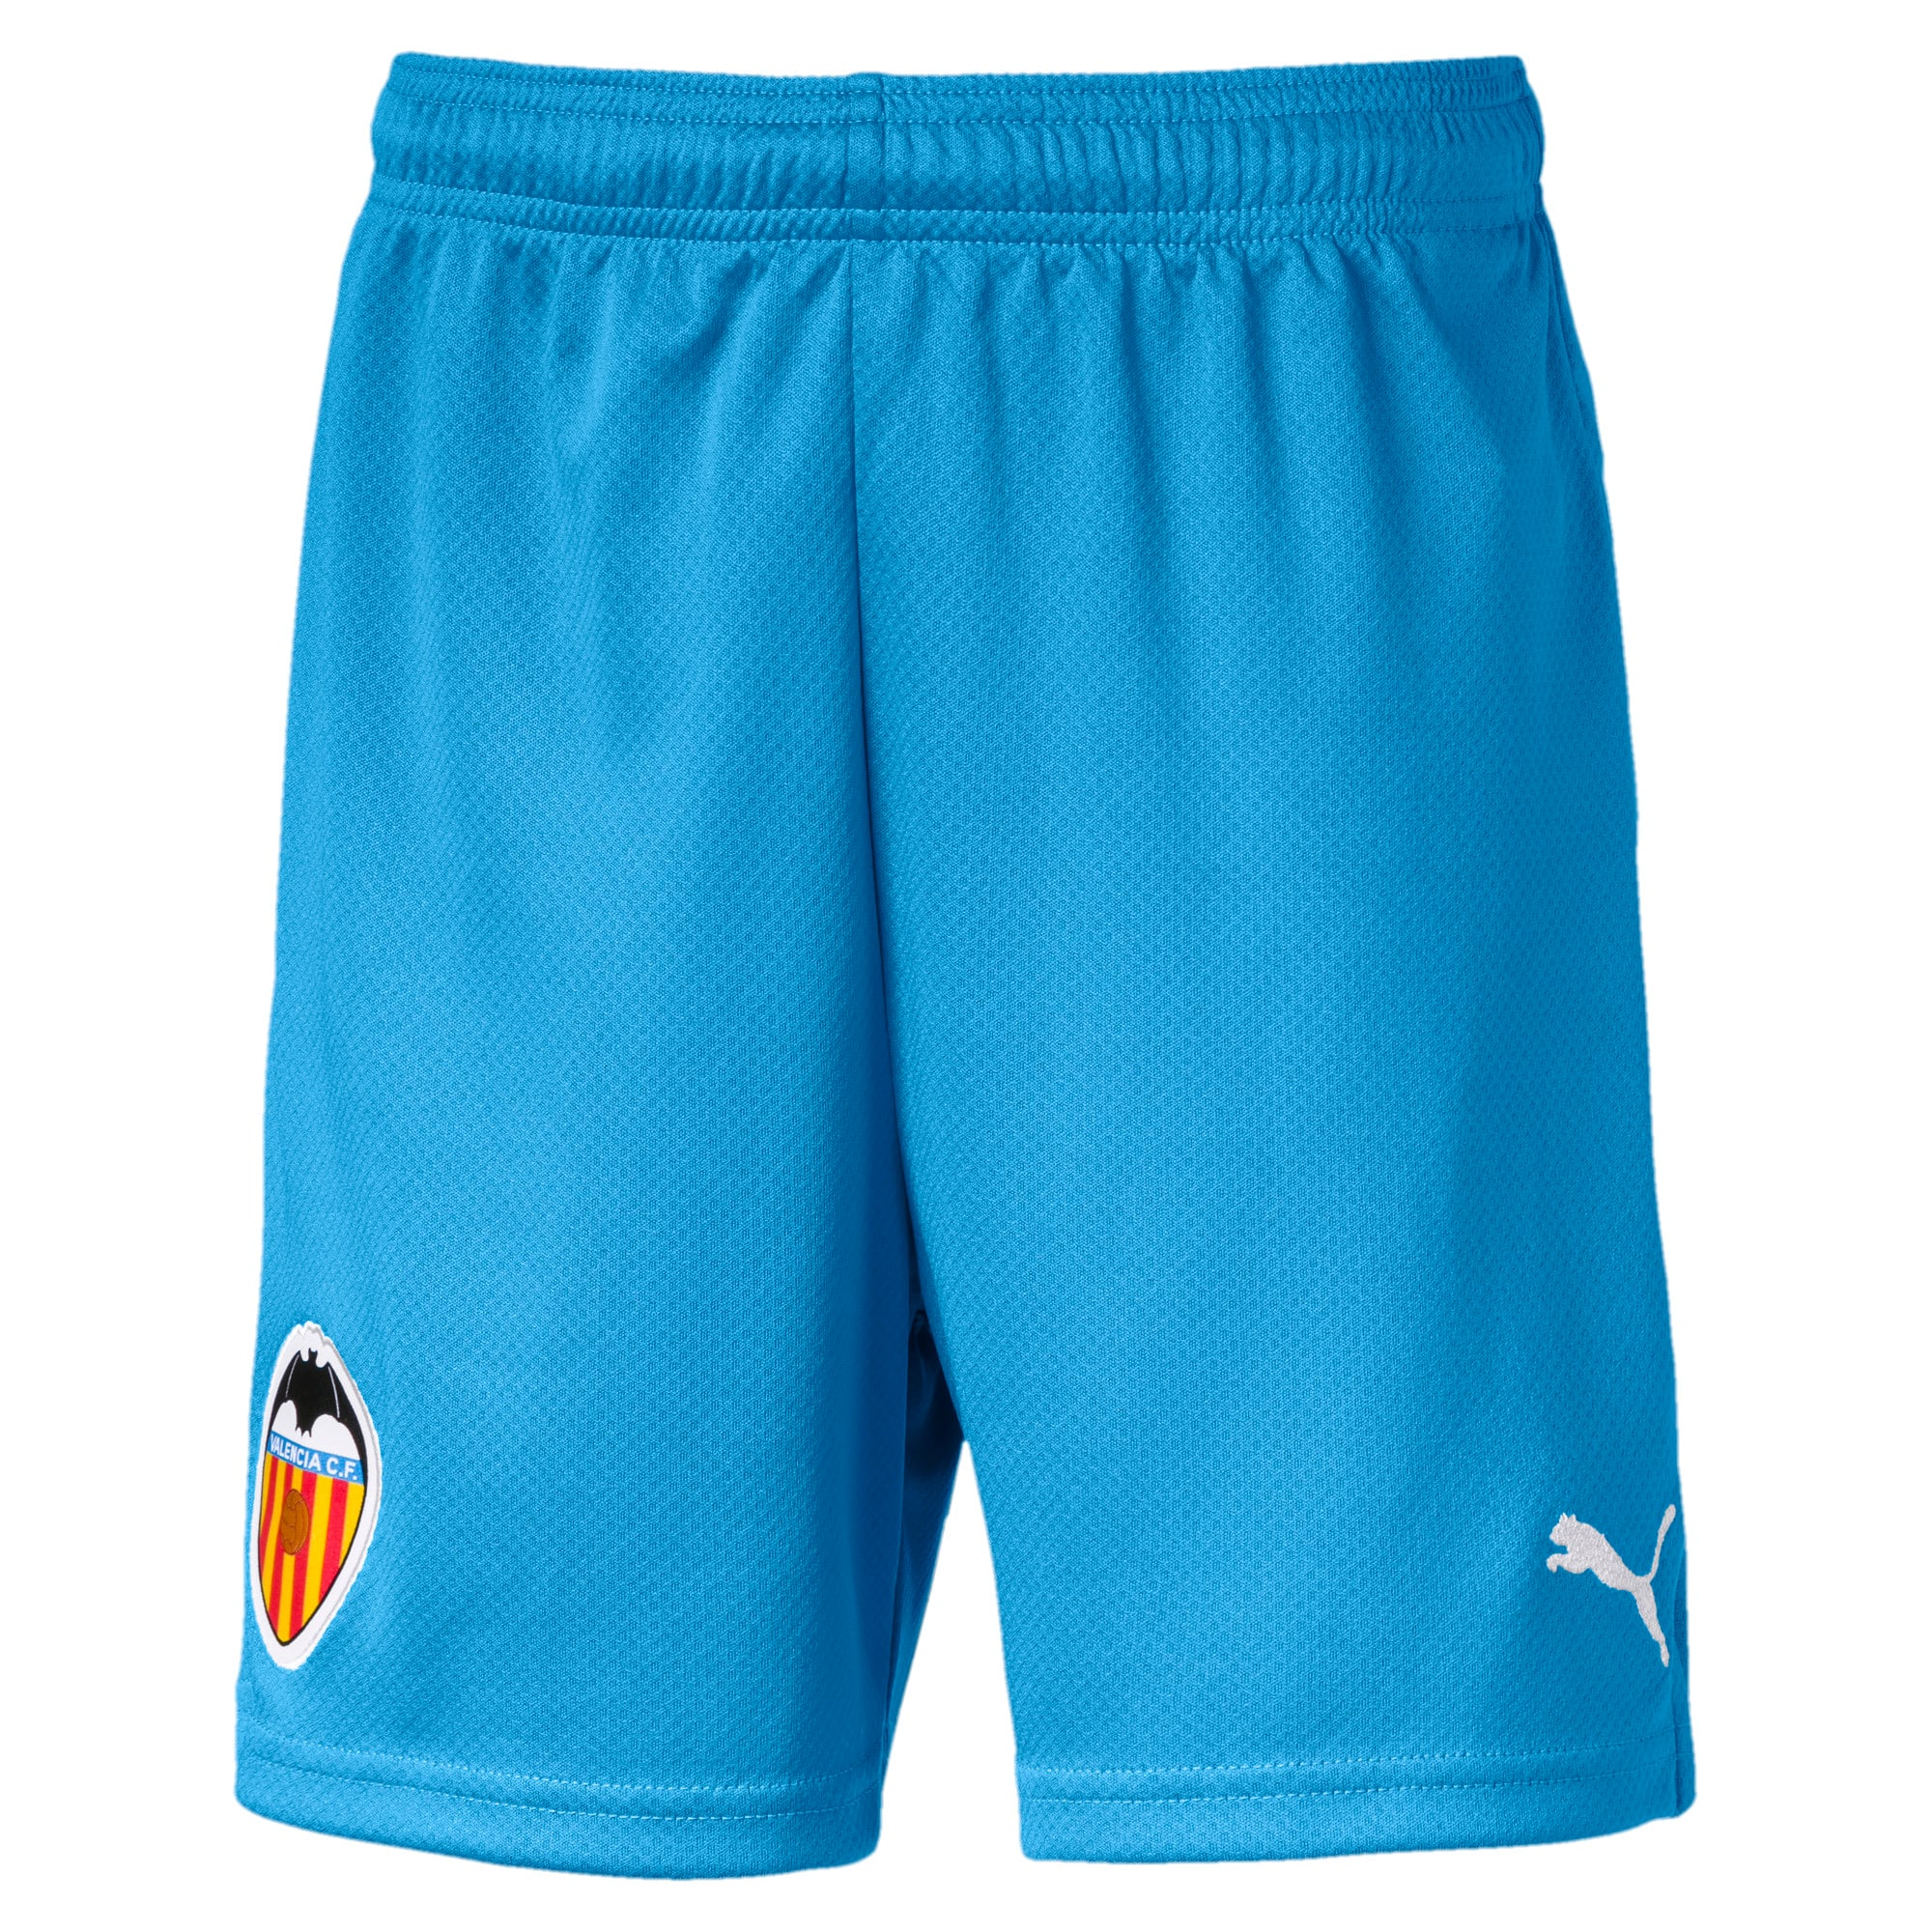 Thumbnail 1 of Valencia CF Jungen Replica Shorts, Bleu Azur-Puma White, medium